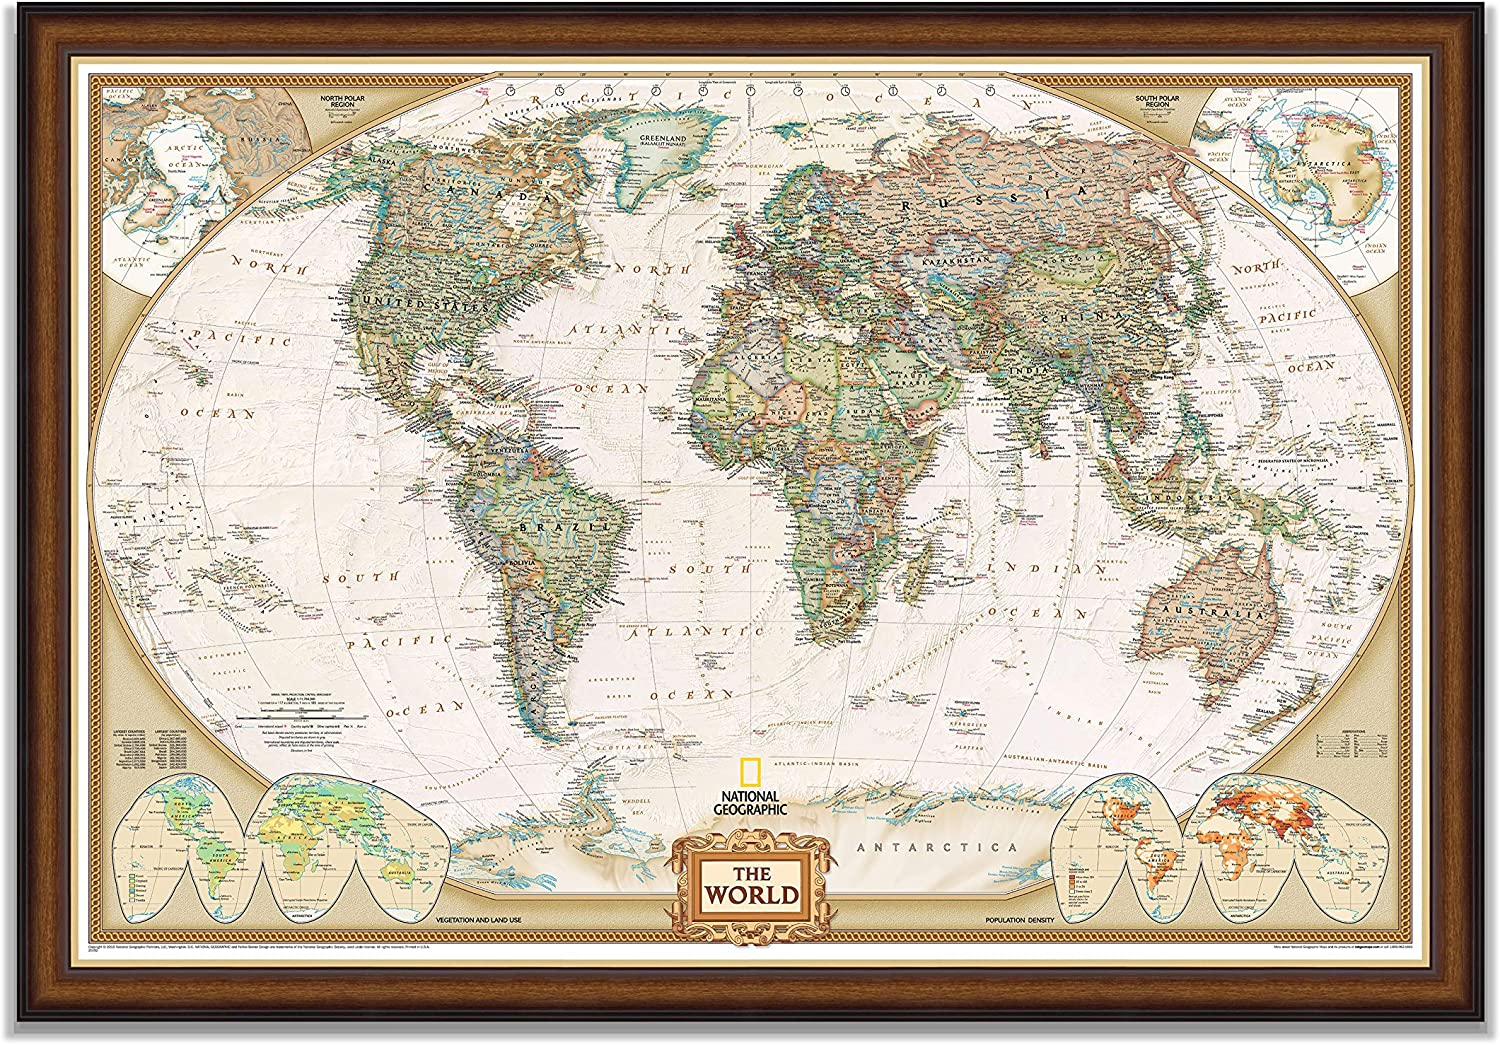 Renditions Gallery, Black Walnut Executive National Geographic World Travel Map with Push Pins, Wall Art for Living Room, Bedroom, Office, 30x44